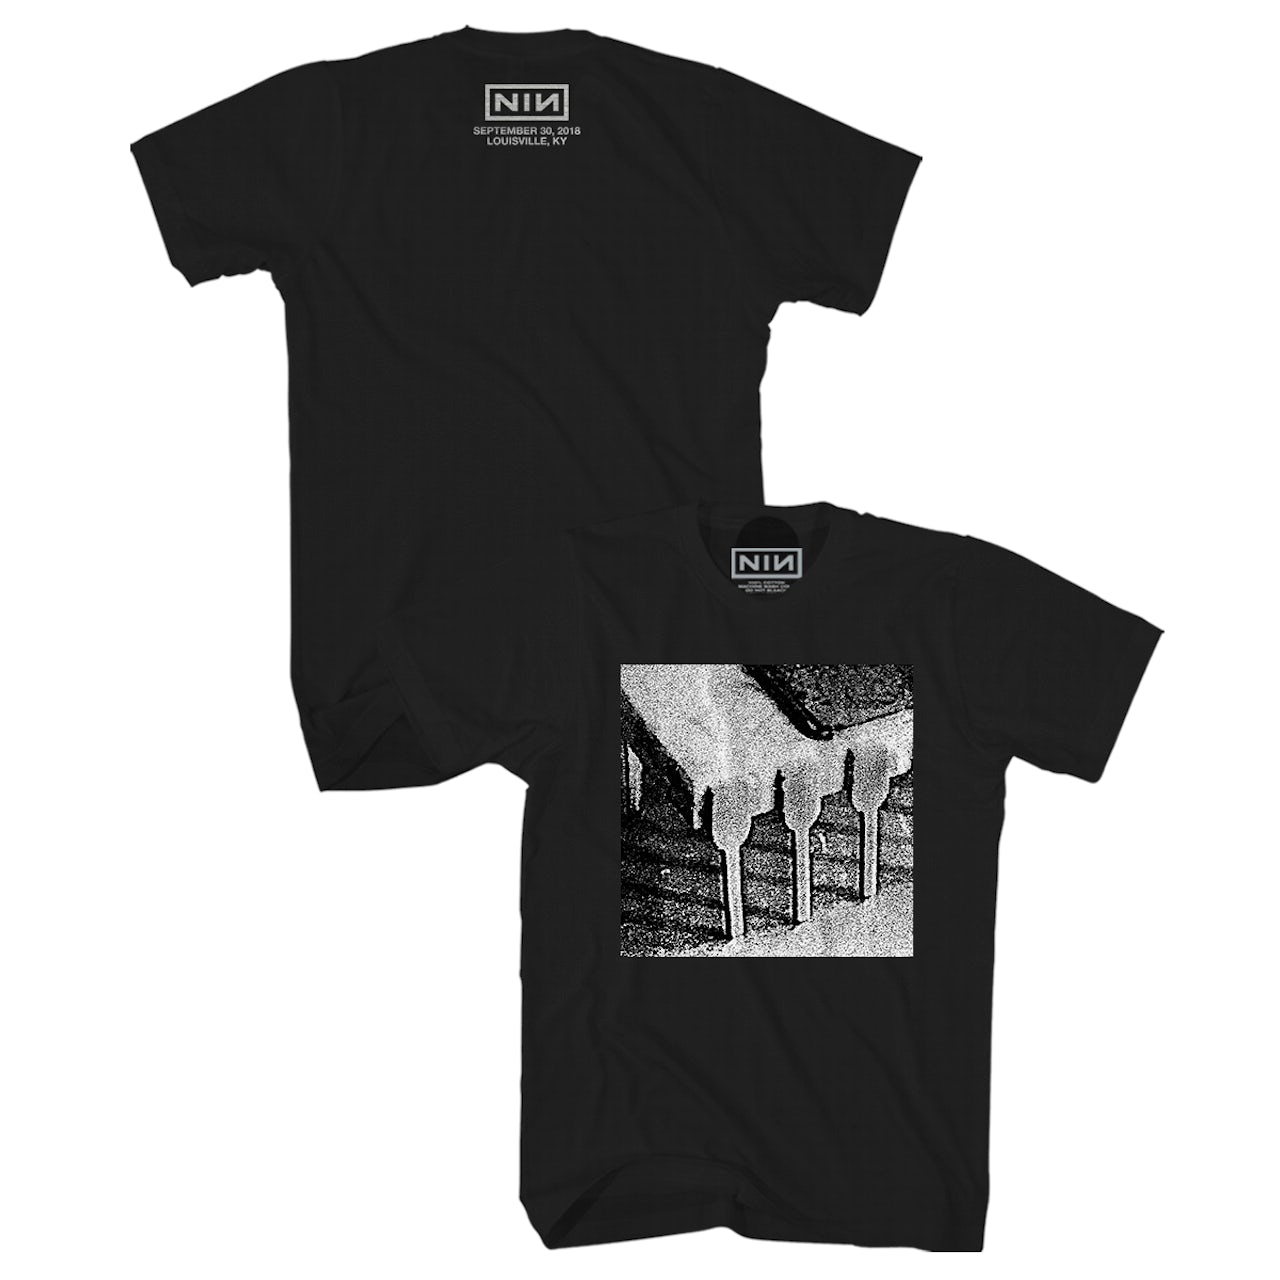 e50afe4a7820a Nine Inch Nails LOUISVILLE, KY EVENT TEE